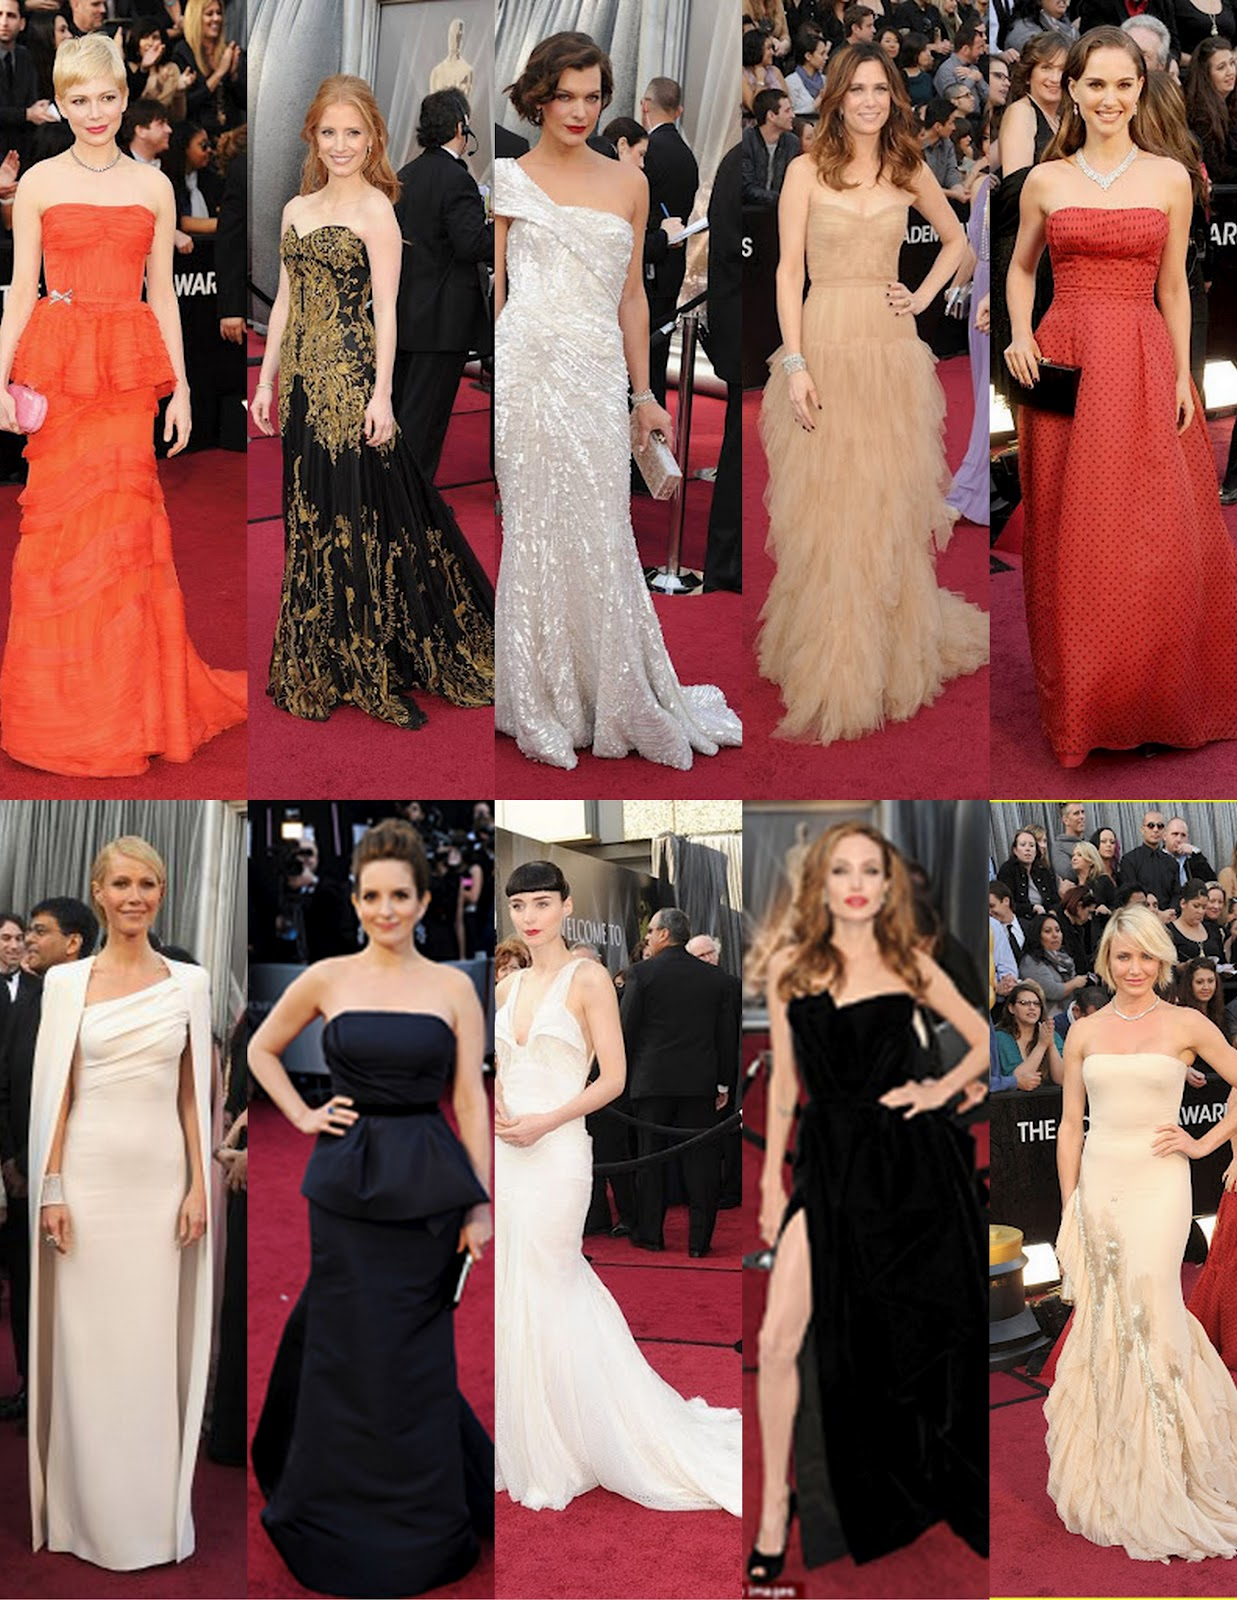 http://2.bp.blogspot.com/-tgfTuiRfeVM/T0sF7s3N0oI/AAAAAAAAGFk/pwyMluCaDI4/s1600/Academy_Awards_Oscars_2012_best_dressed_red_carpet.jpg